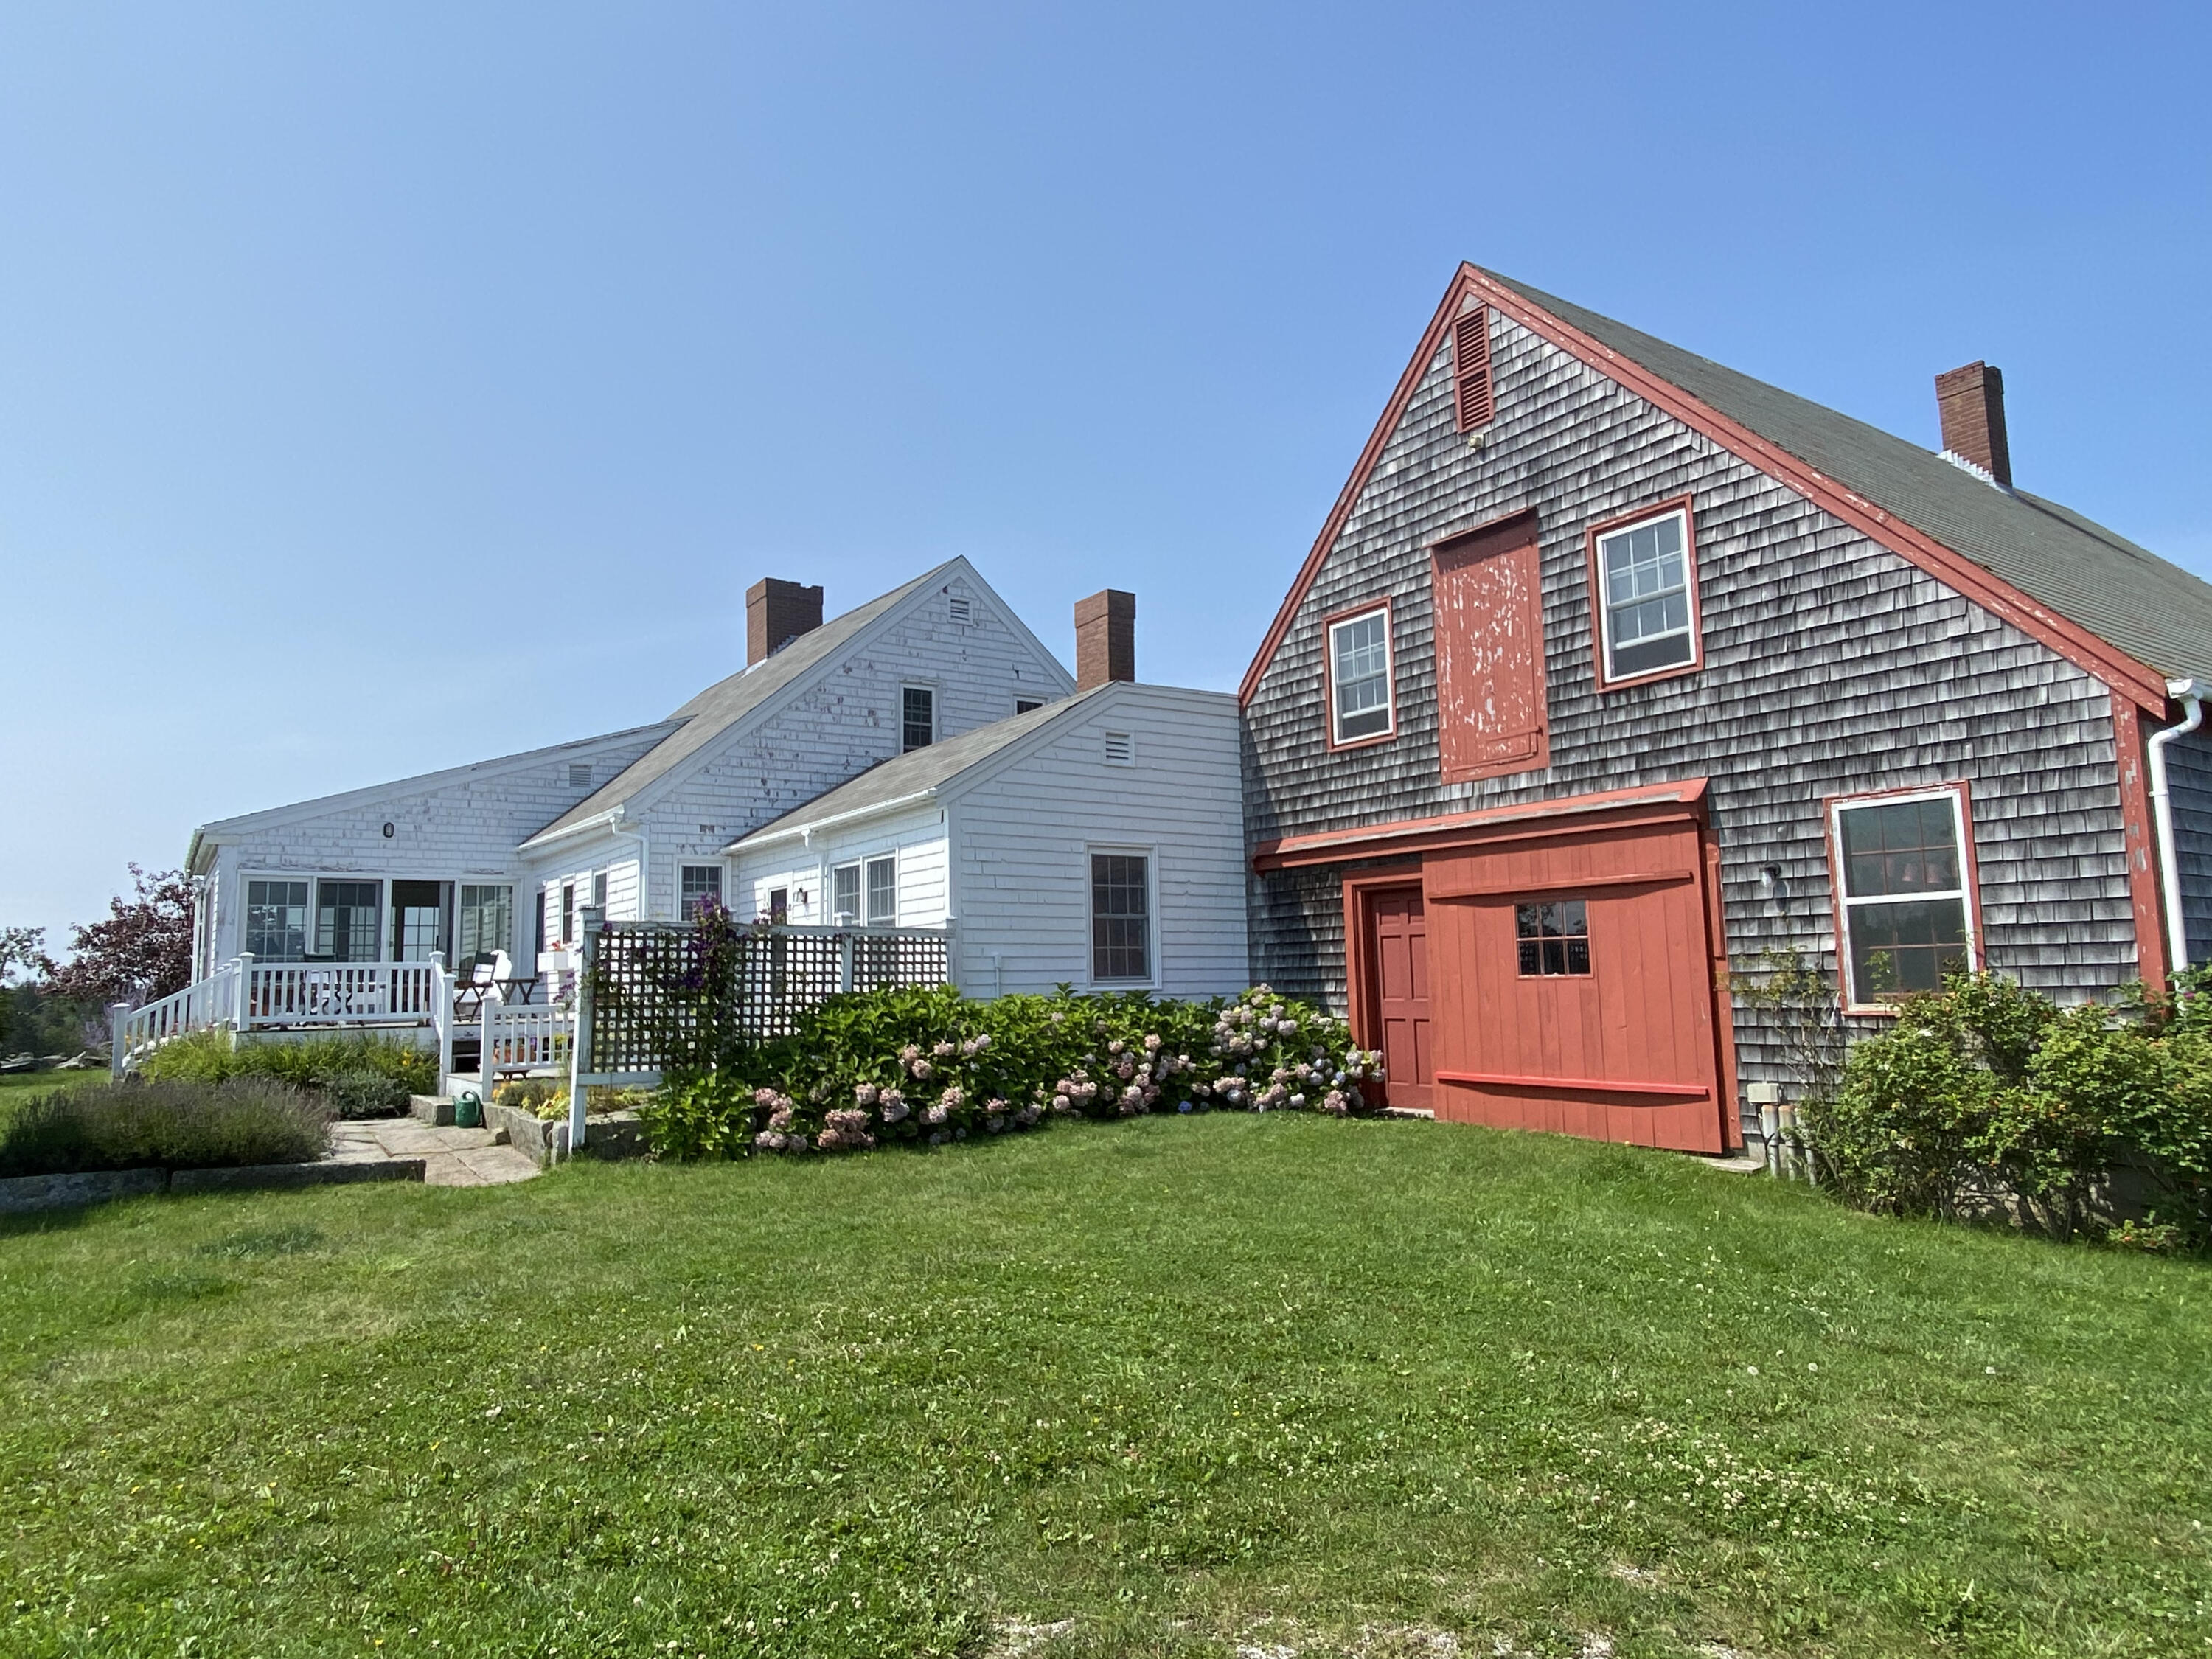 A rare and special opportunity to own a beautifully maintained farmhouse with breathtaking elevated ocean views and shared dock rights on Vinalhaven's east side.   The classic residence is sited at the top of Poole's Hill and has been expanded and renovated overtime. The farmhouse has central heat and  includes a large eat-in kitchen, dining room, living room with fireplace, sunroom, guest bedroom and full bath on the first floor, with an ensuite master, guest bedroom, and full bath upstairs. The attached barn includes a lovely library/den and study on the first floor with 2 bedrooms and a bath up. Above the barn/garage is an unfinished room that, with dormers, could be transformed into another room with elevated ocean views. Connecting the two living areas is a generously-sized pantry and laundry area with  painted floors, built in cabinetry and slate sink. Existing easements shared with neighboring properties protect the natural beauty, habitat, and classic qualities of this very special area. This is the only available property with 14 acres of open meadow, a shared deepwater dock, and an iconic Maine home oozing of charm inside and out!